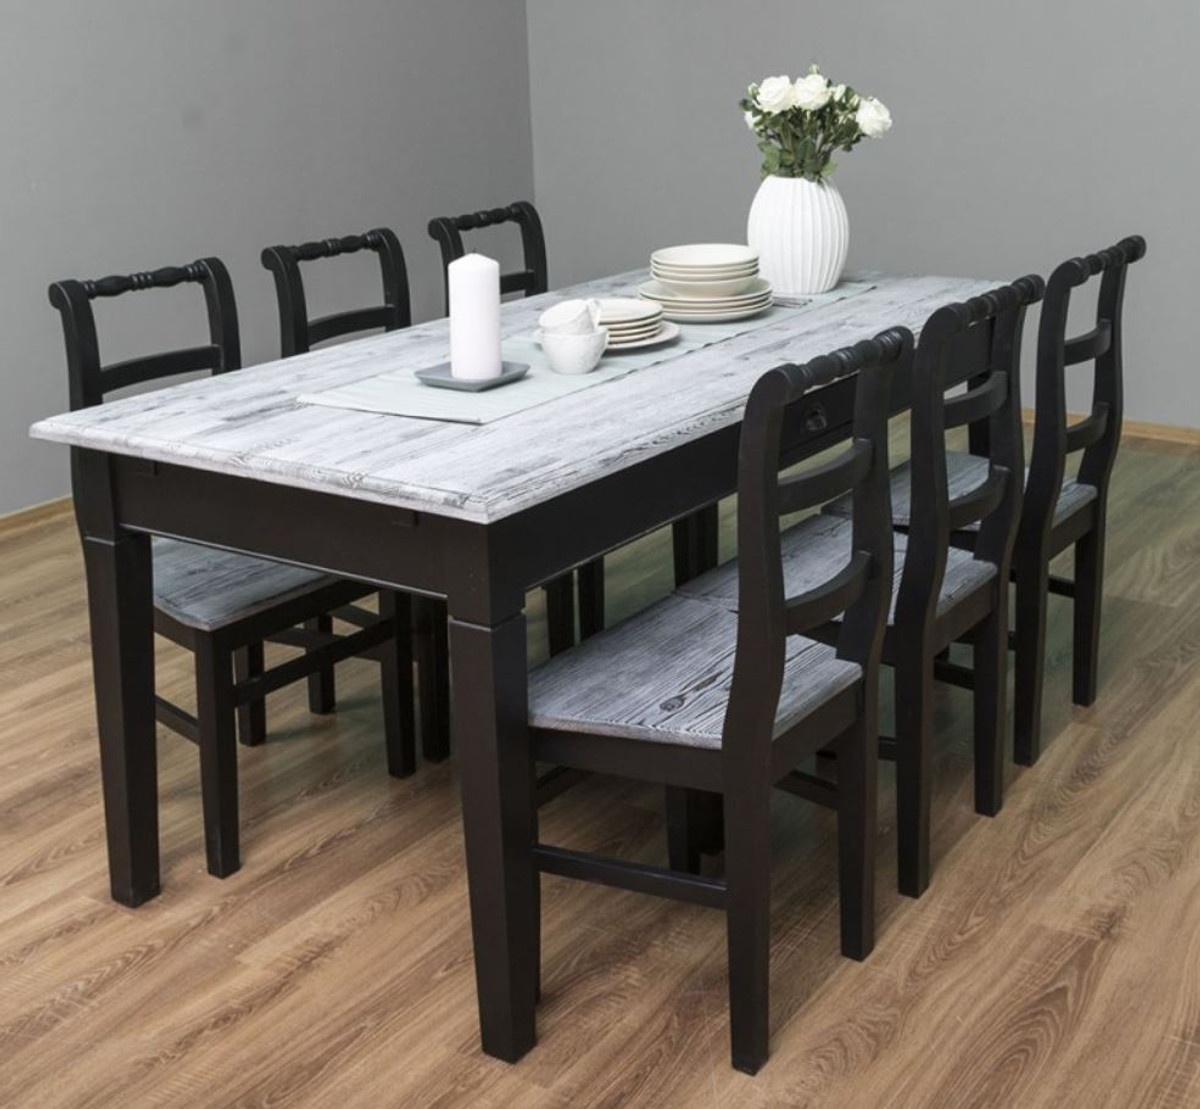 Picture of: Casa Padrino Country Style Dining Room Furniture Set Antique White Black 1 Dining Table 6 Dining Chairs Solid Wood Dining Room Furniture Country Style Furniture